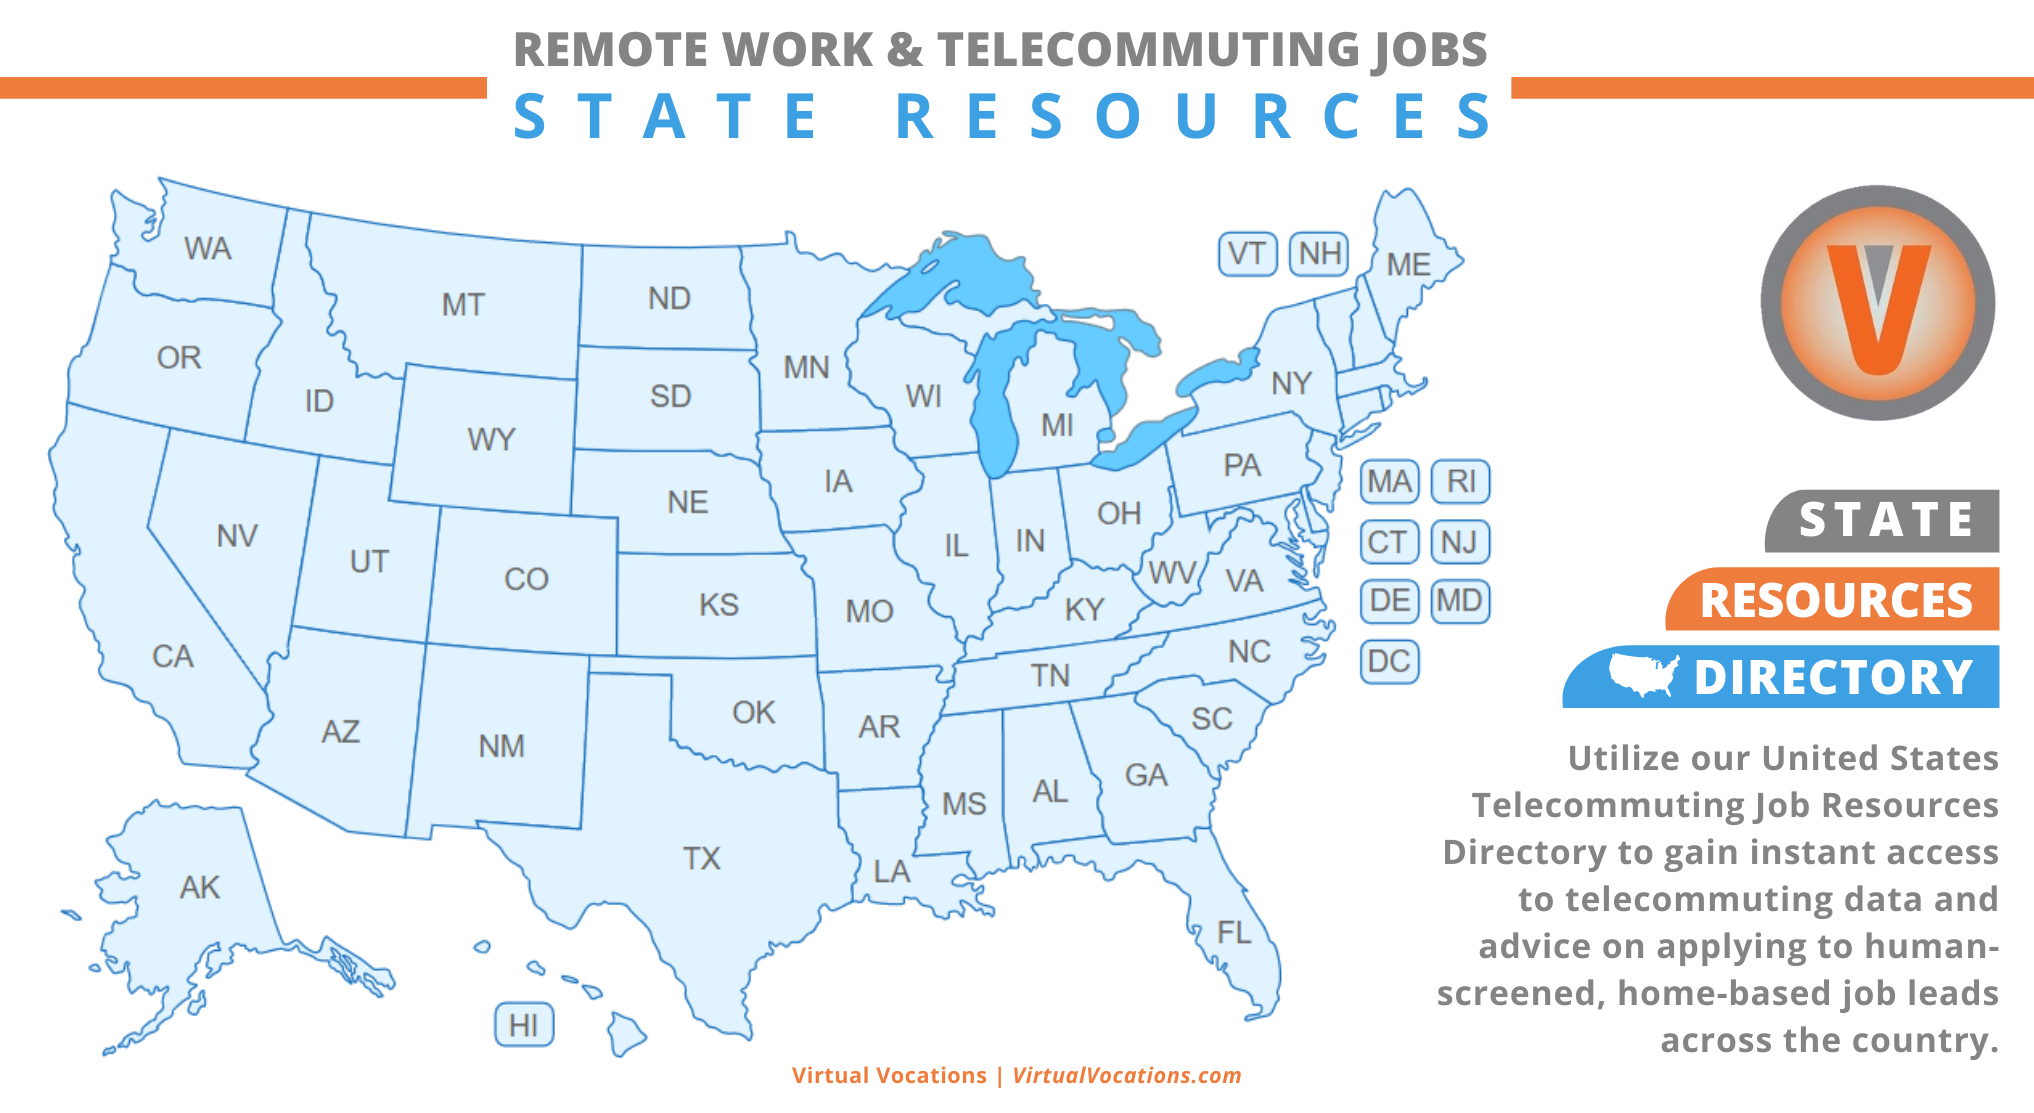 Remote Work and Telecommuting Jobs State Resources - Virtual Vocations